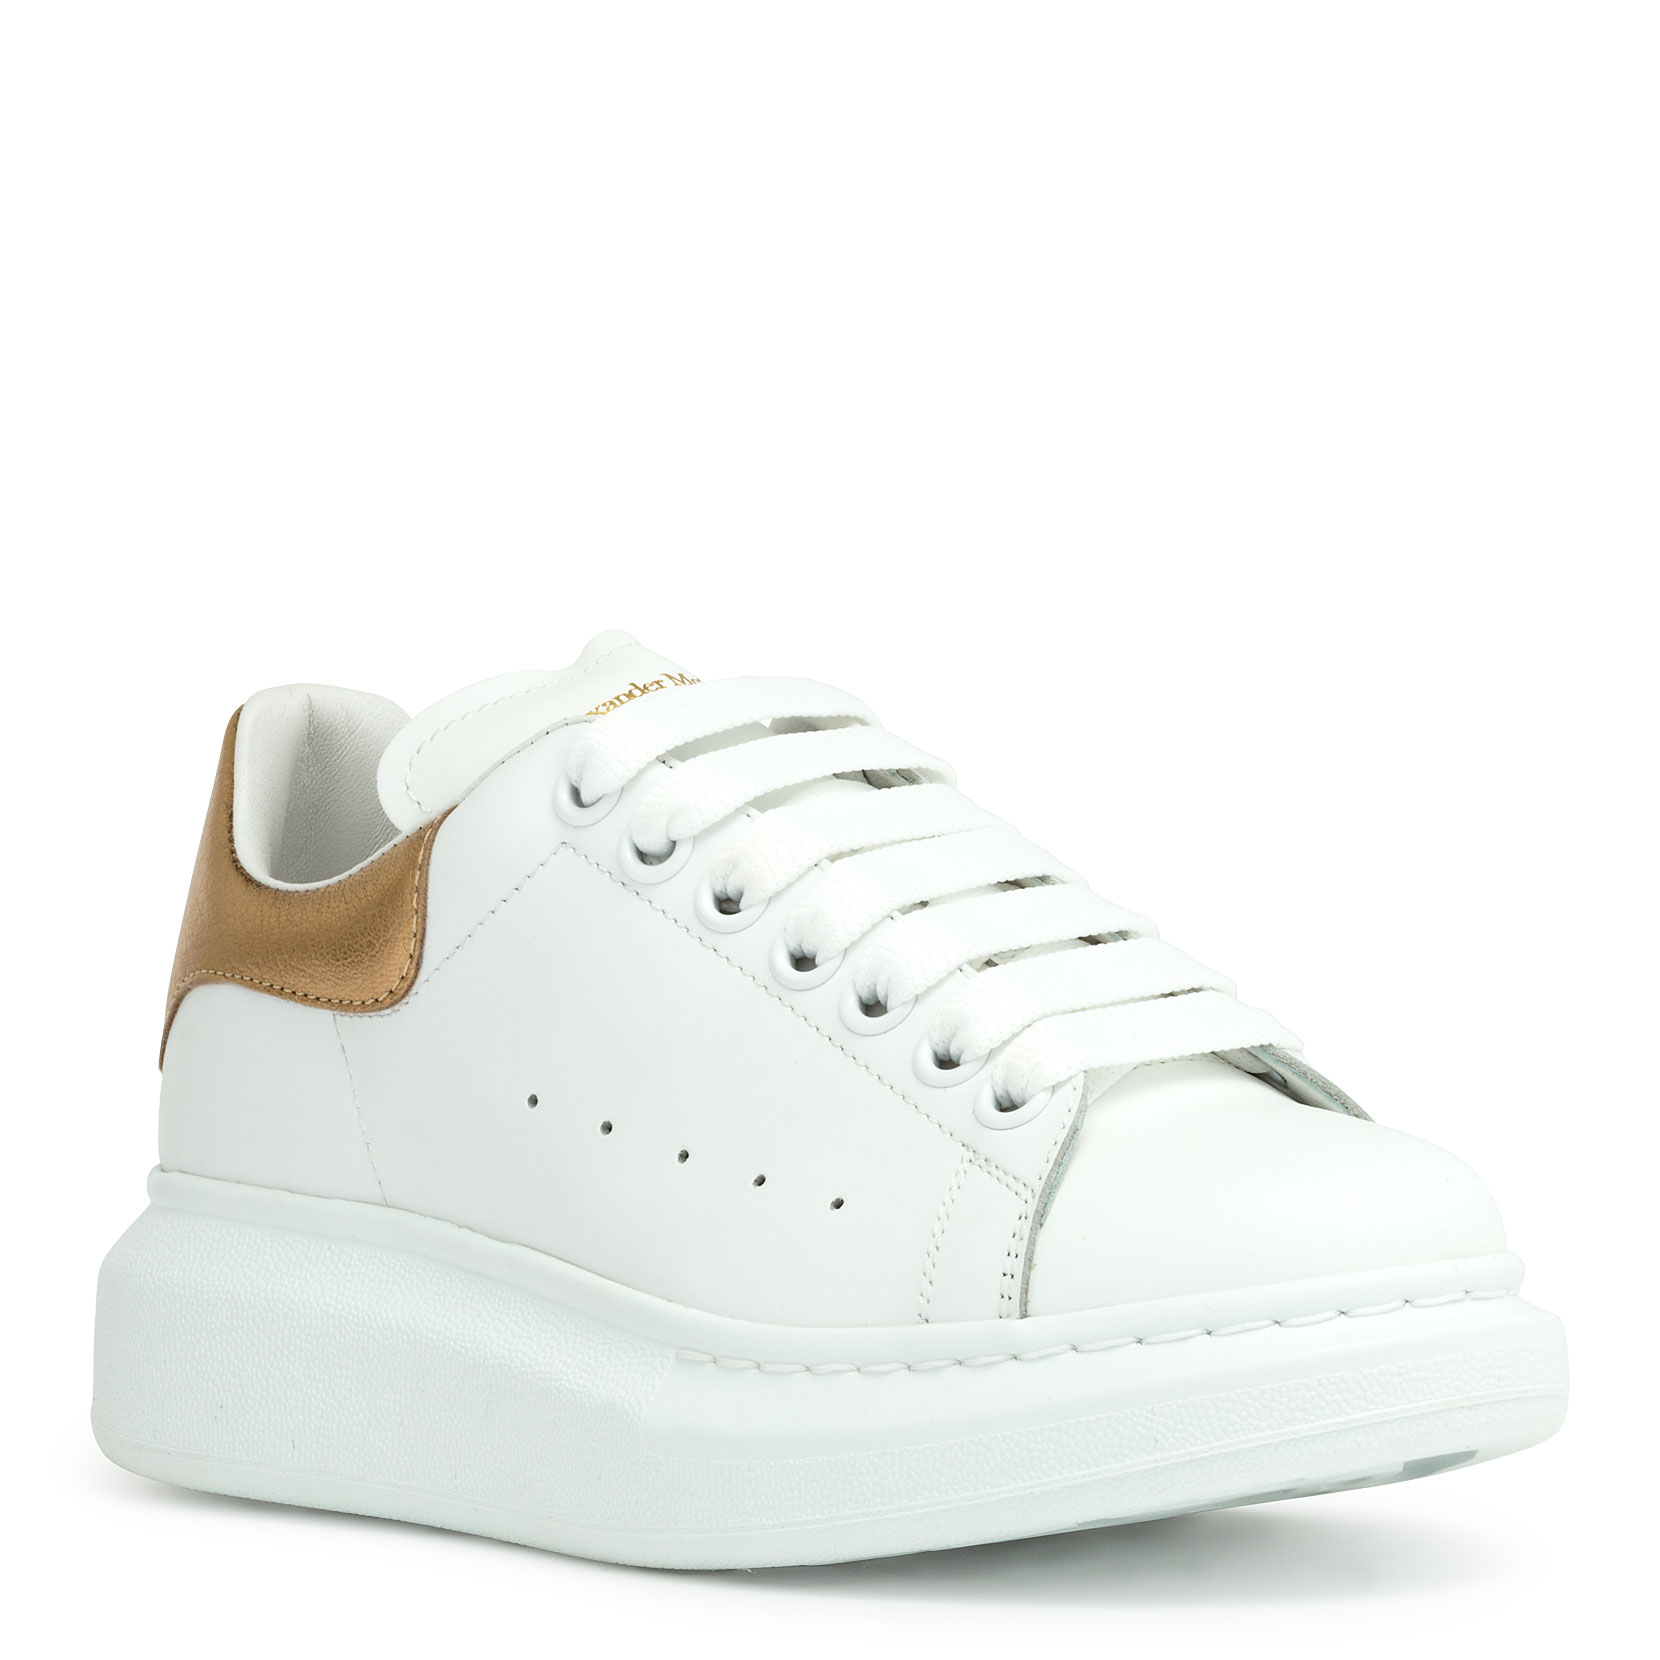 Alexander Mcqueen Metallic-Trimmed Leather Exaggerated-Sole Sneakers In White